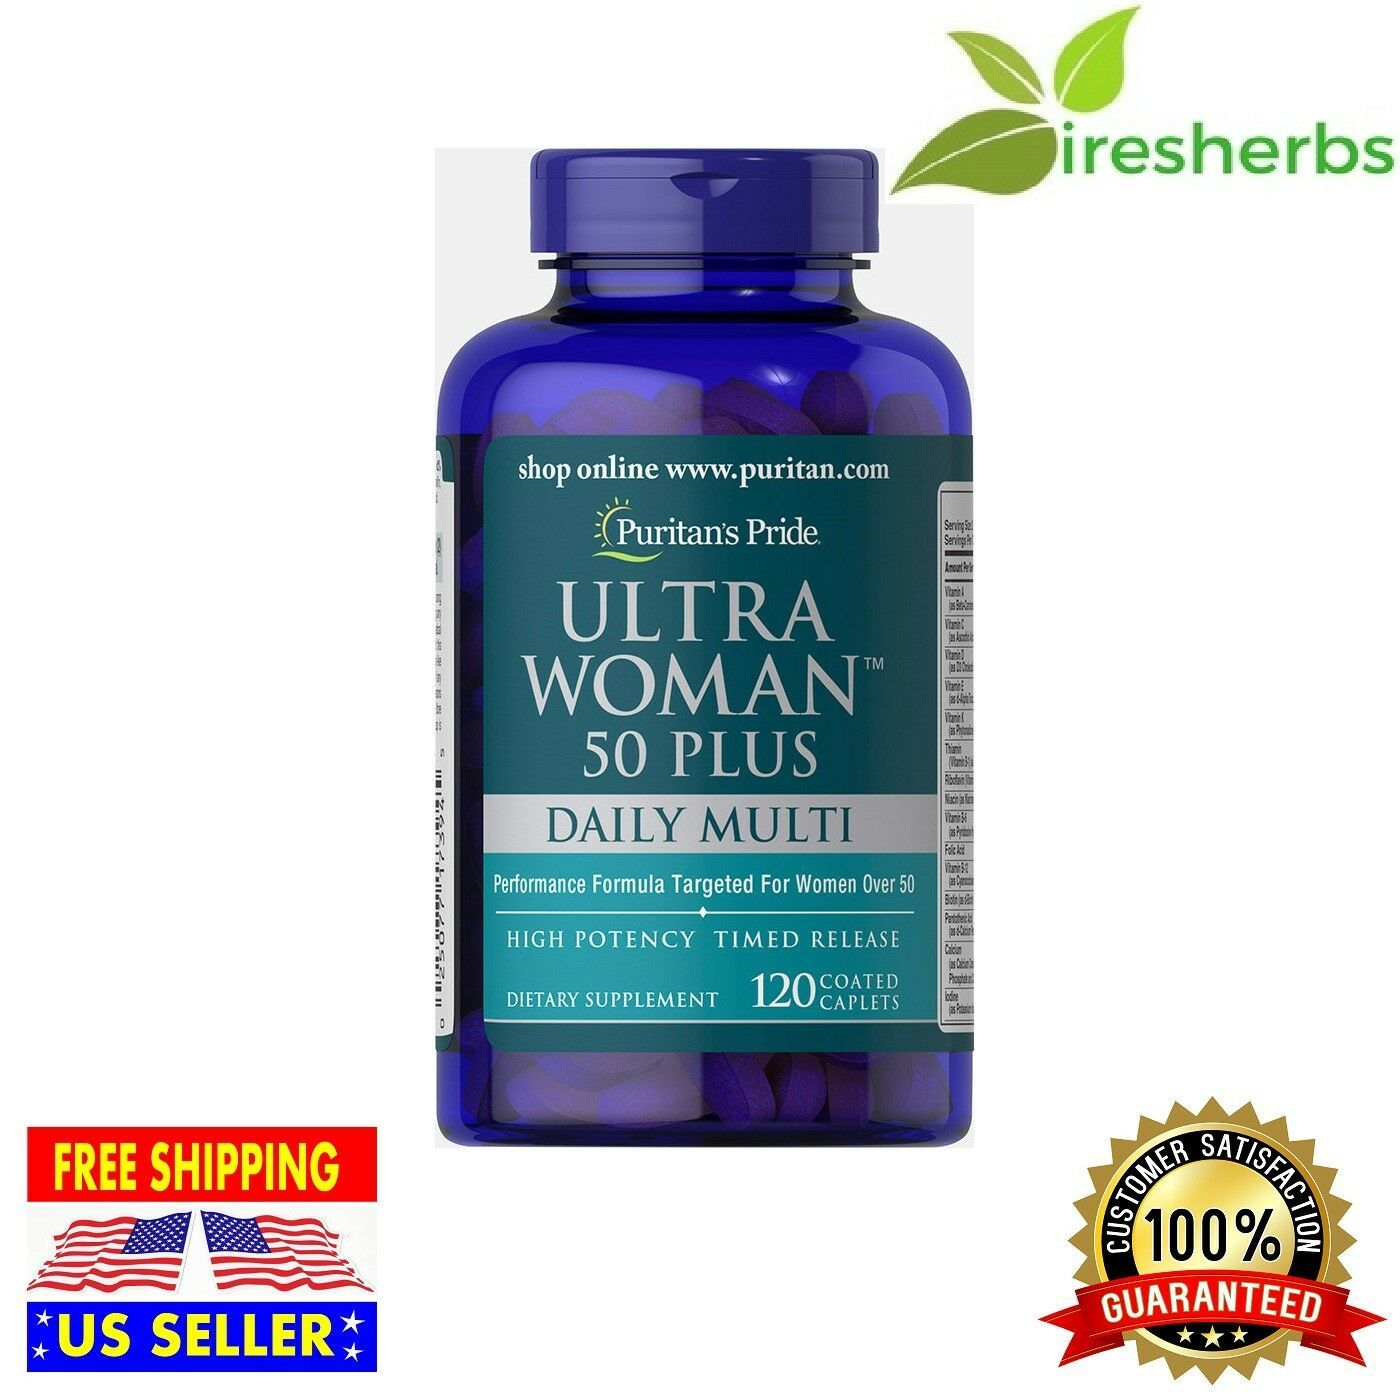 ULTRA WOMAN 50 PLUS MULTIVITAMINS PERFORMANCE ANTIOXIDANT SUPPLEMENT 360 CAPLETS image 2